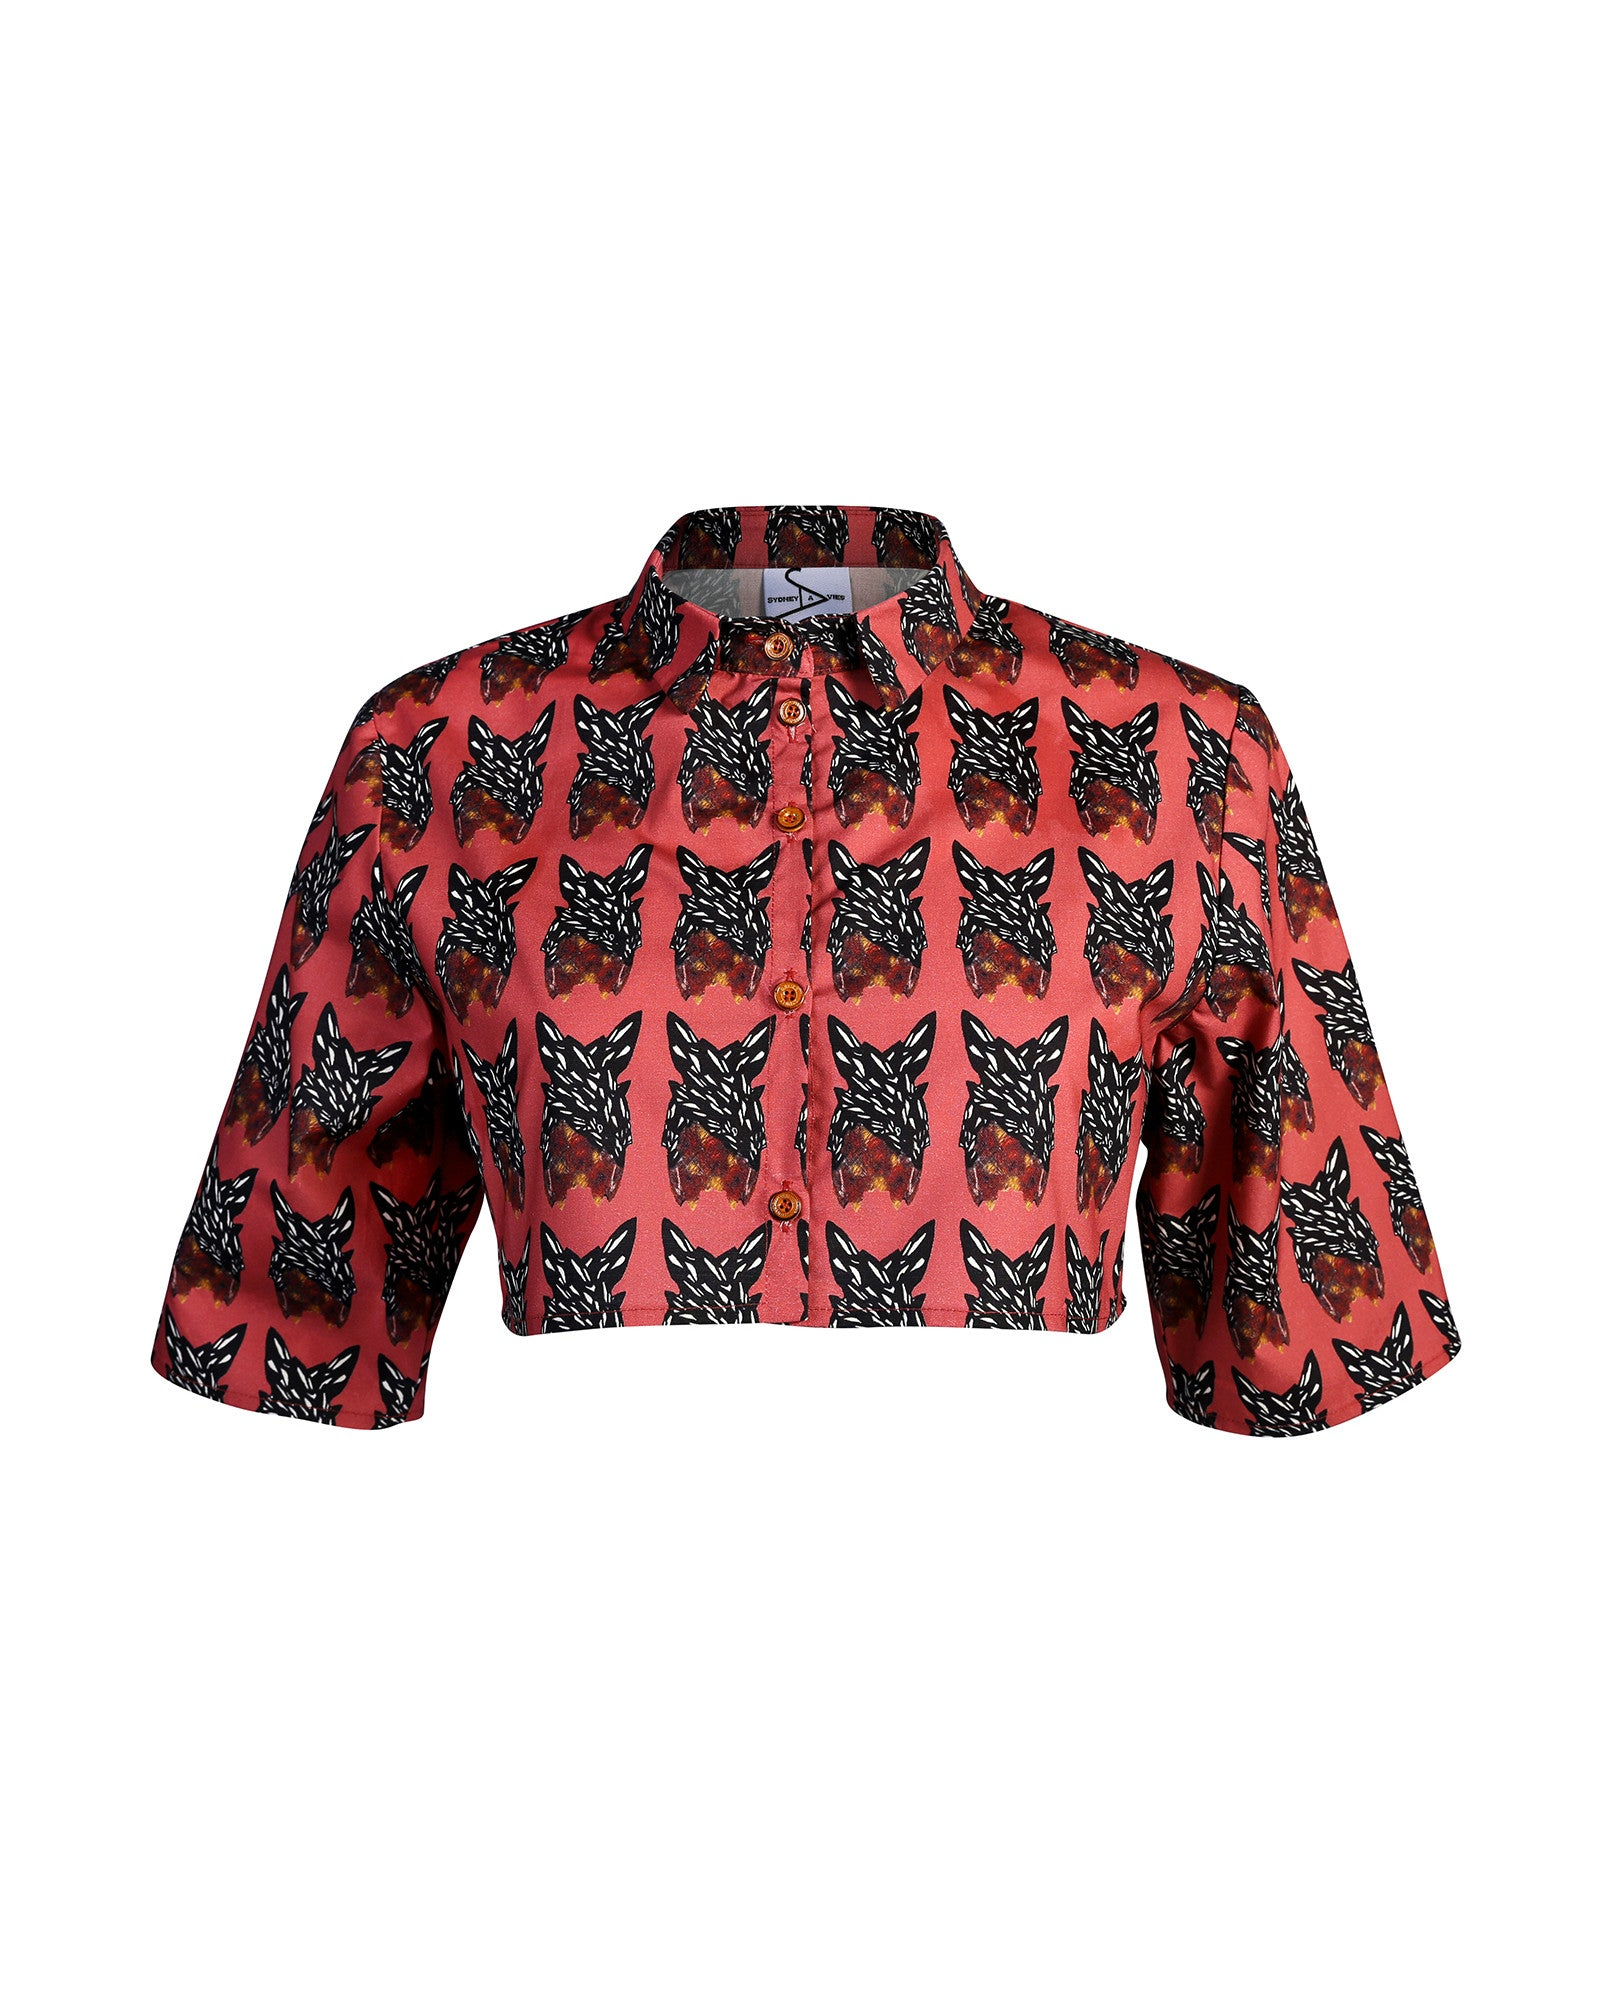 Sydney-Davies - Printed Tailored Crop Shirt - The Velvet Closet - 1